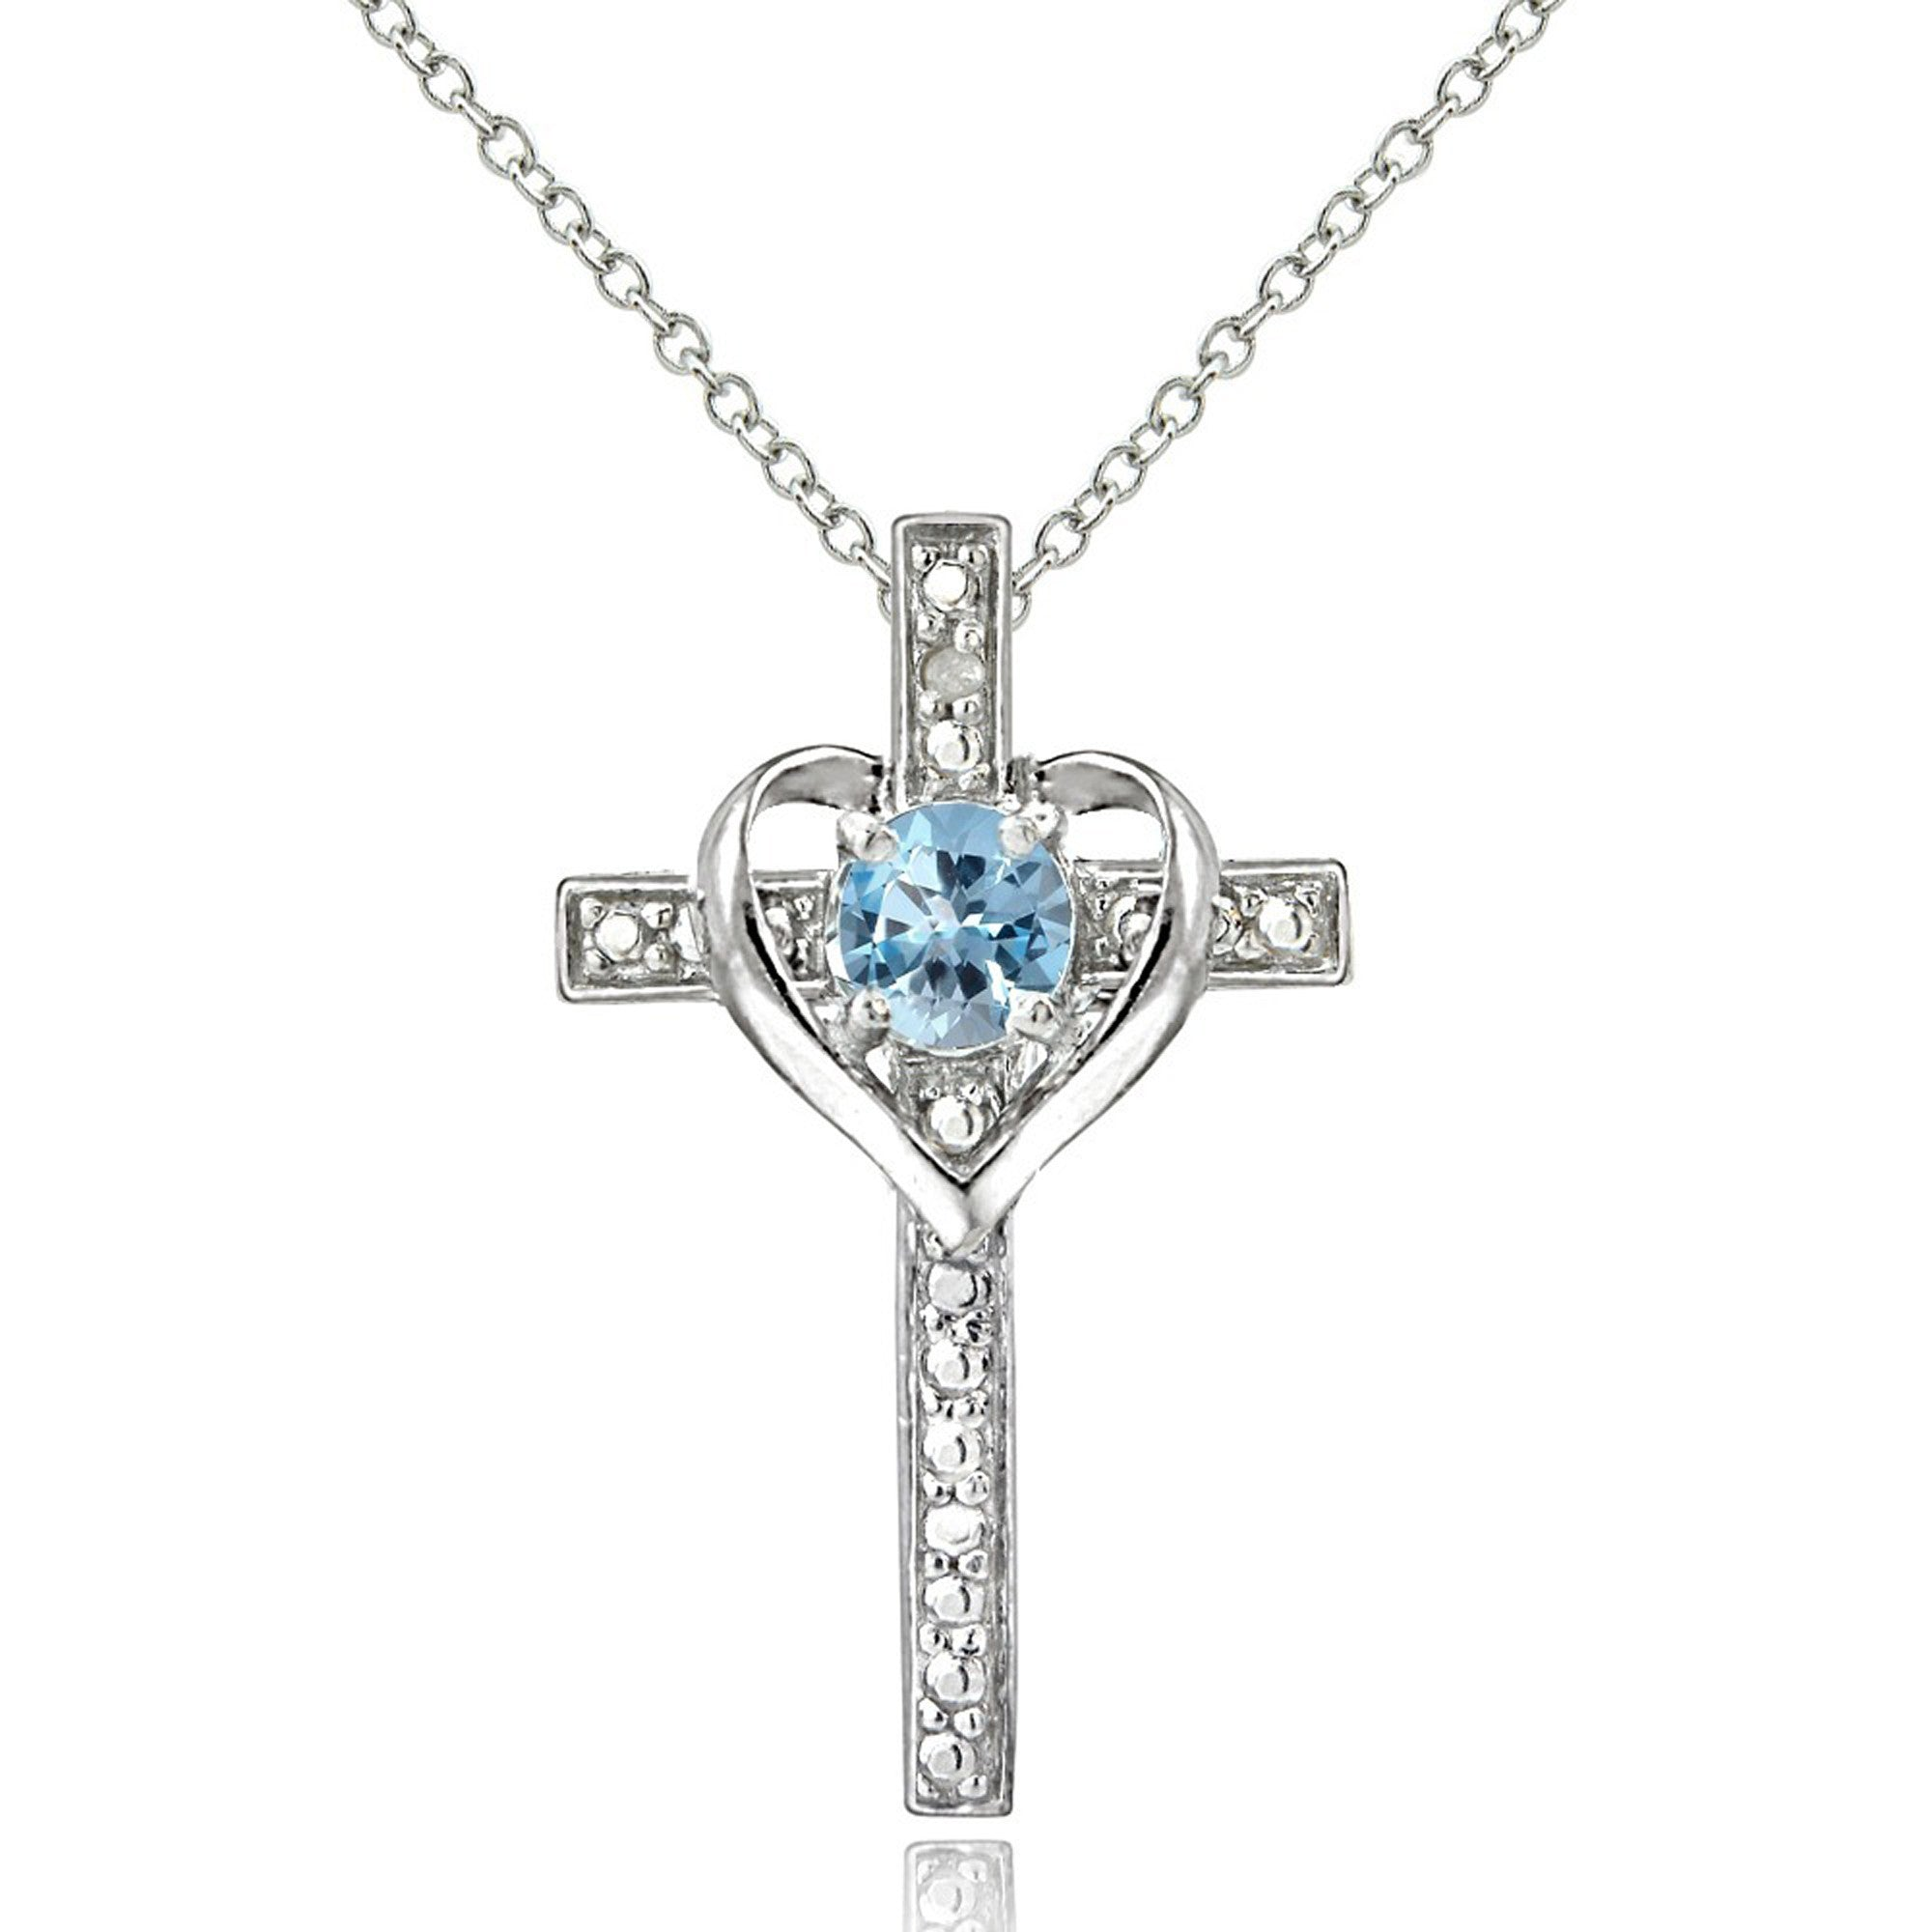 Diamond Accented Sterling Silver Cross Necklace - Blue Topaz